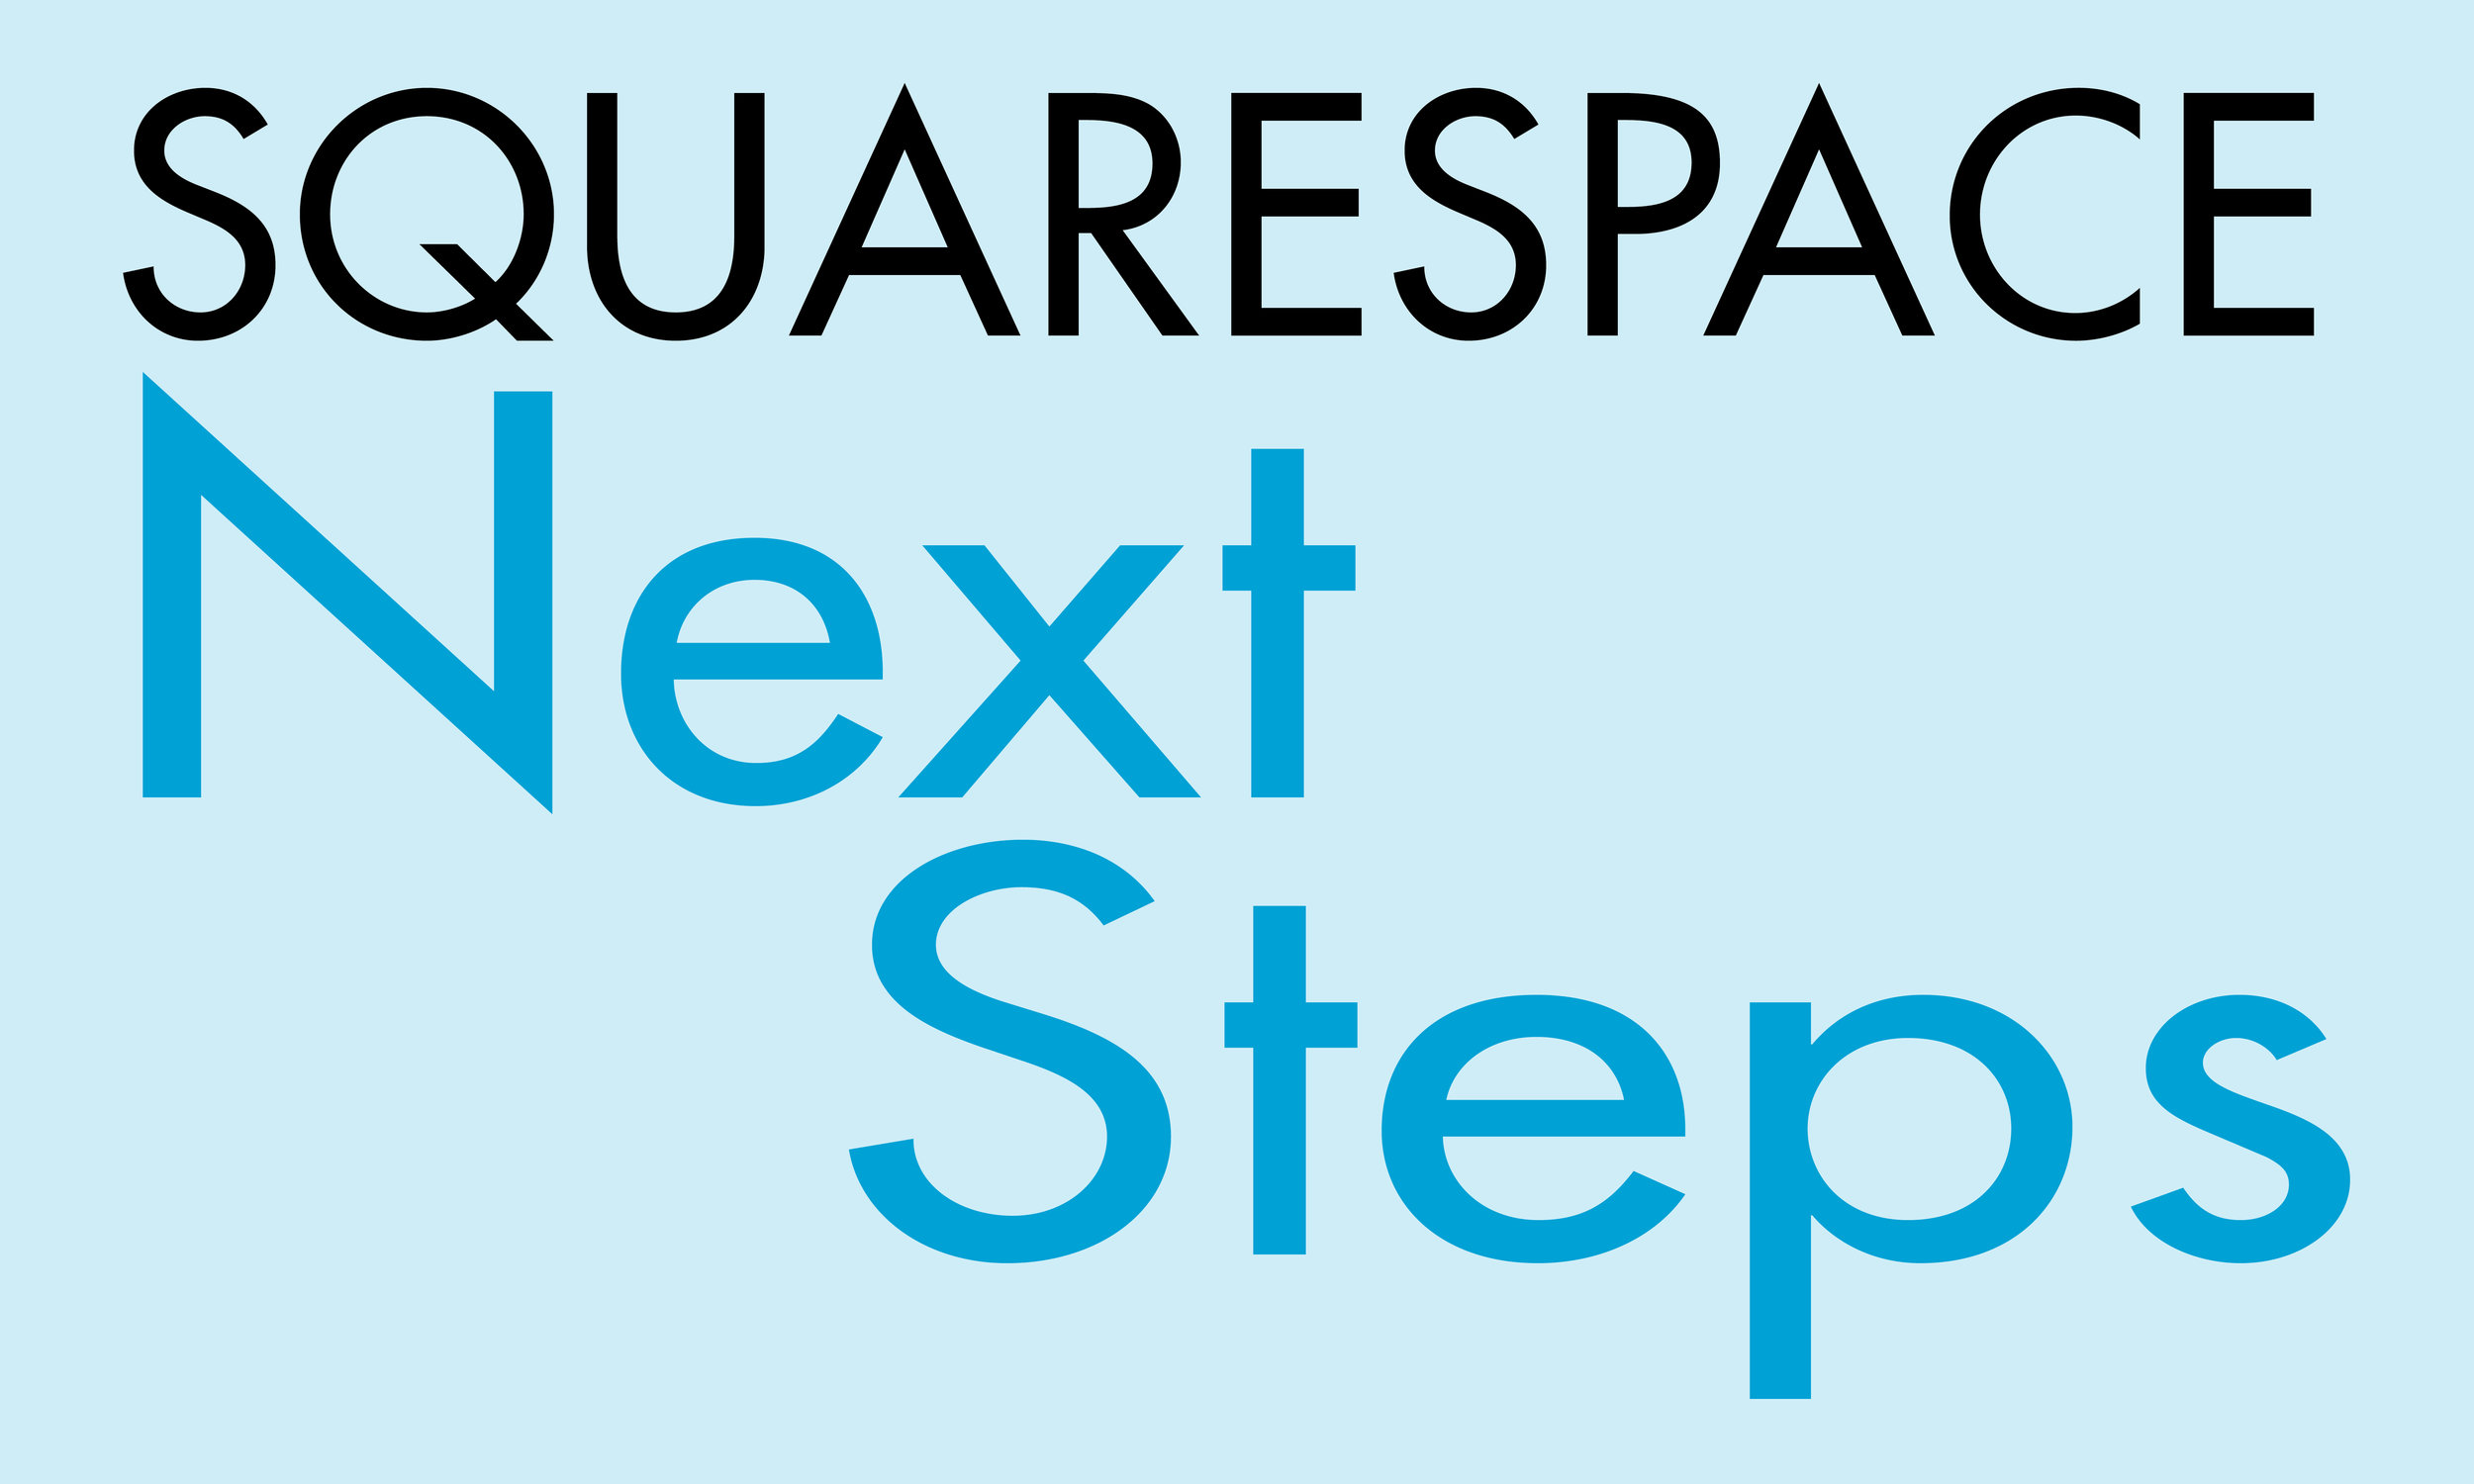 Squarespace-Next-Steps.jpg